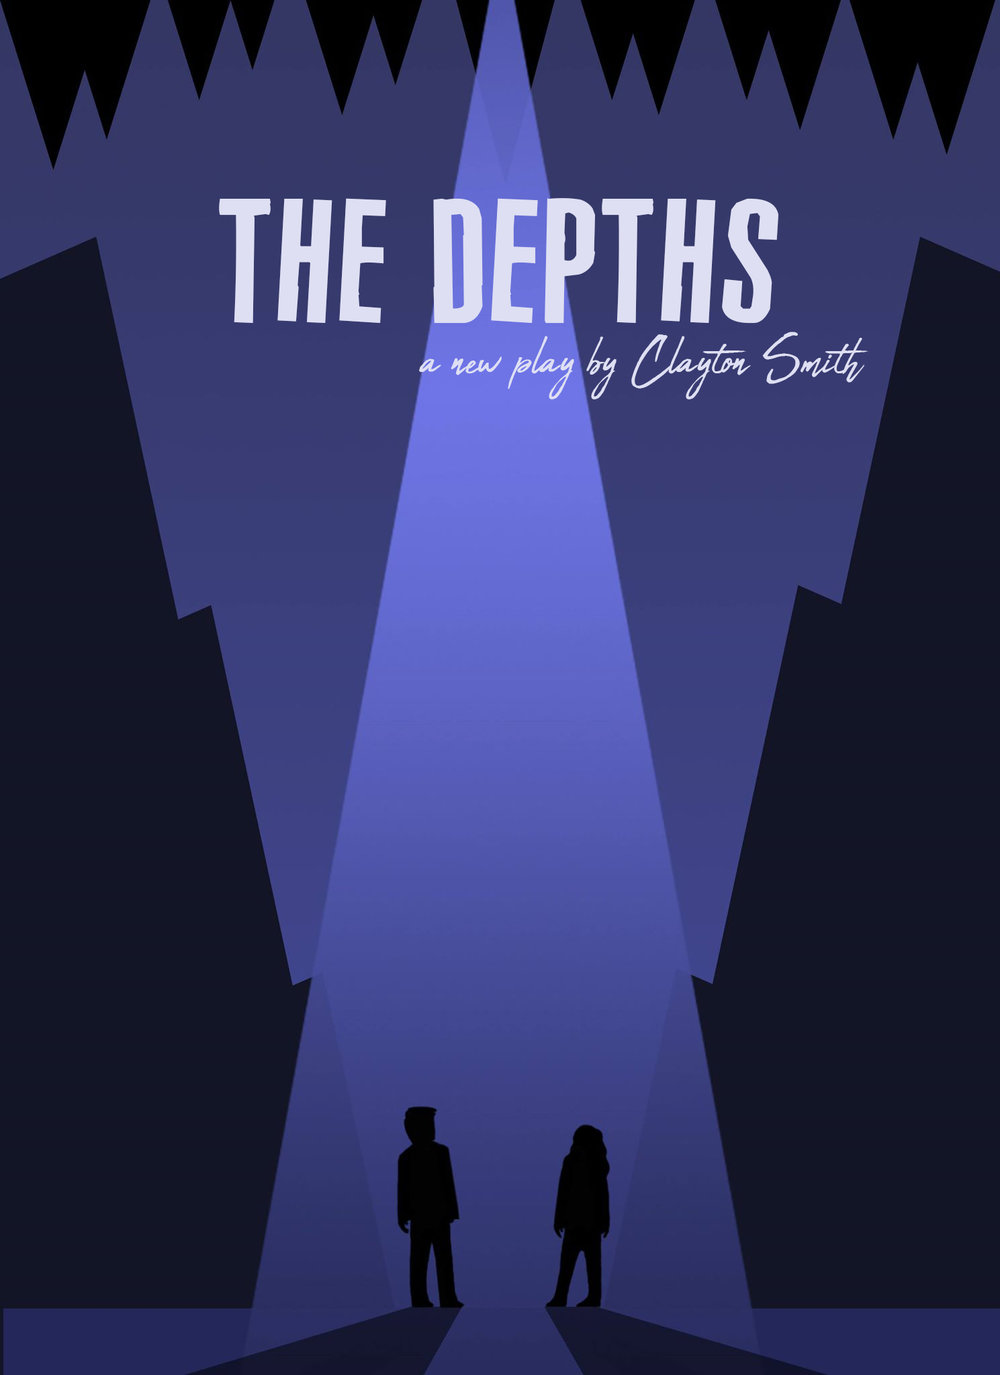 The Depths Poster clean draft.jpg